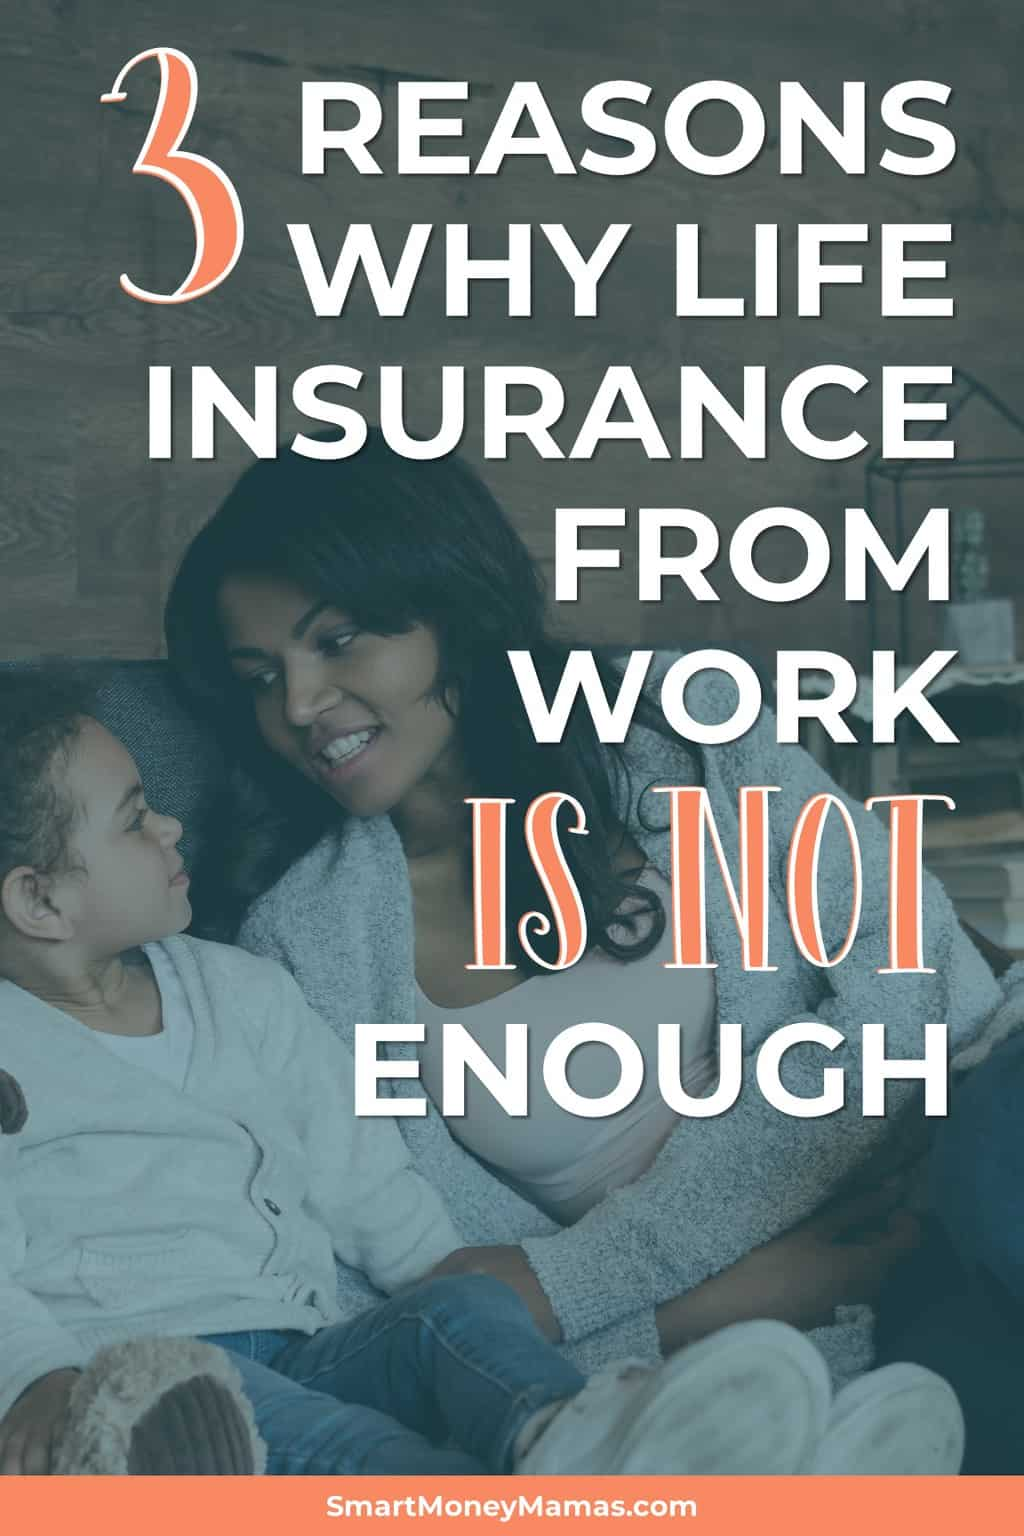 3 reasons why life insurance from work isn't enough